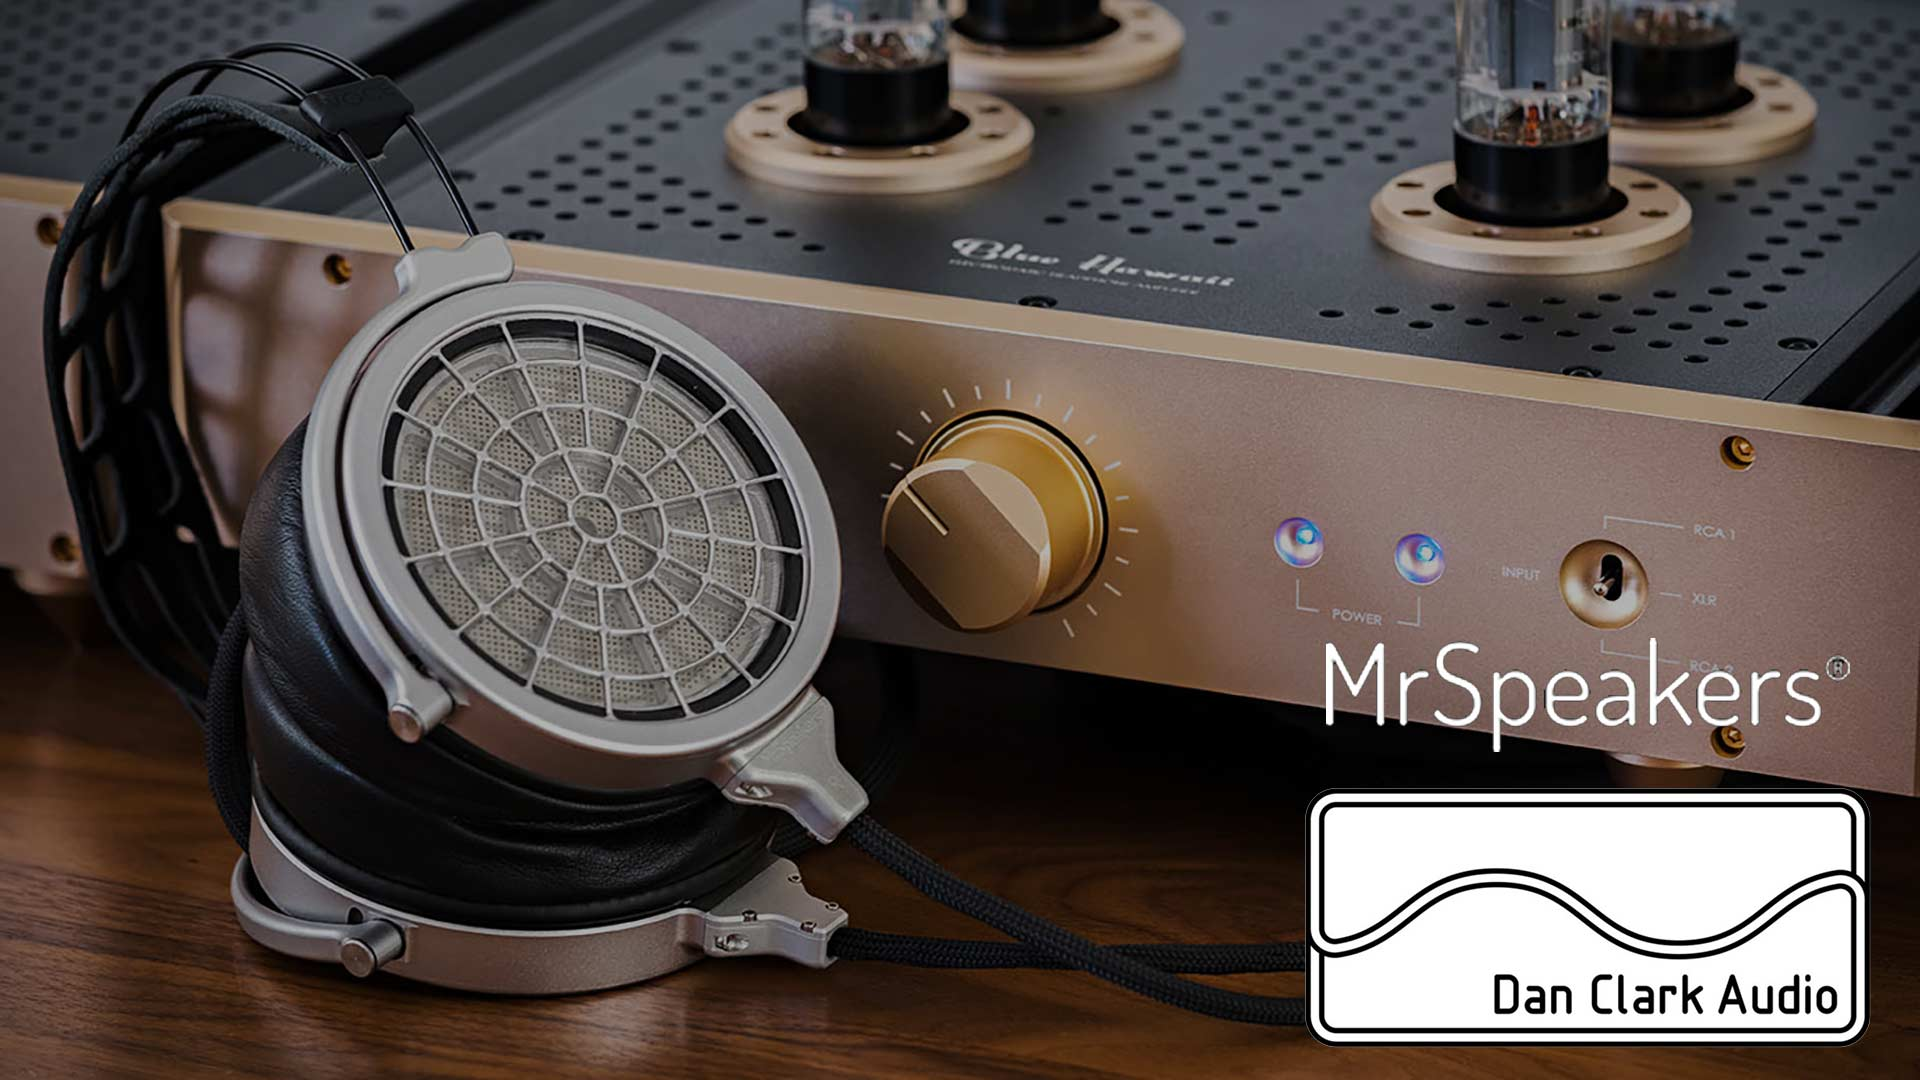 MrSpeakers Is Now Dan Clark Audio | Unilet Sound & Vision